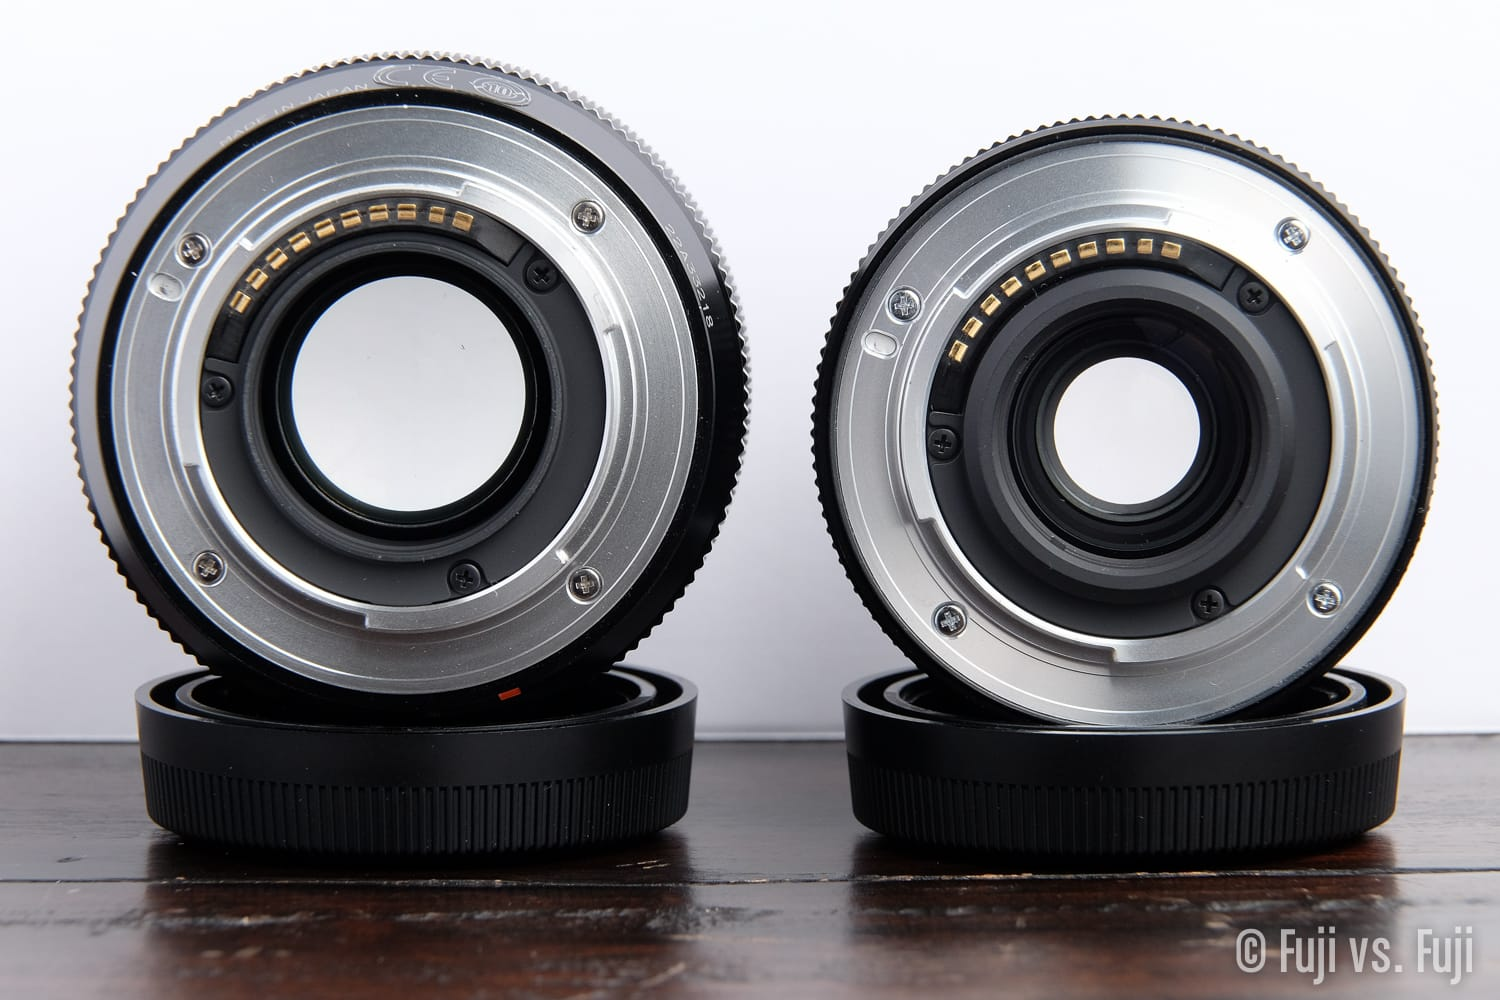 Standard non-weather-sealed mount left, weather sealed mount right